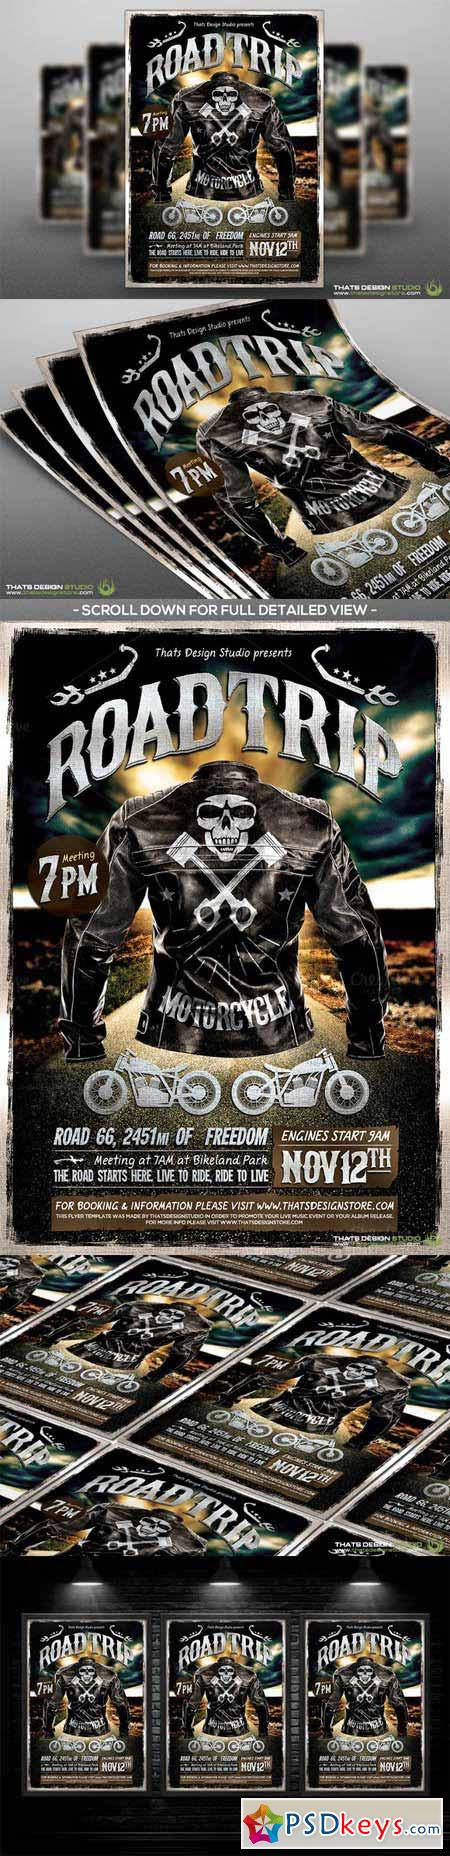 motorcycle road trip flyer template 486776 free download photoshop